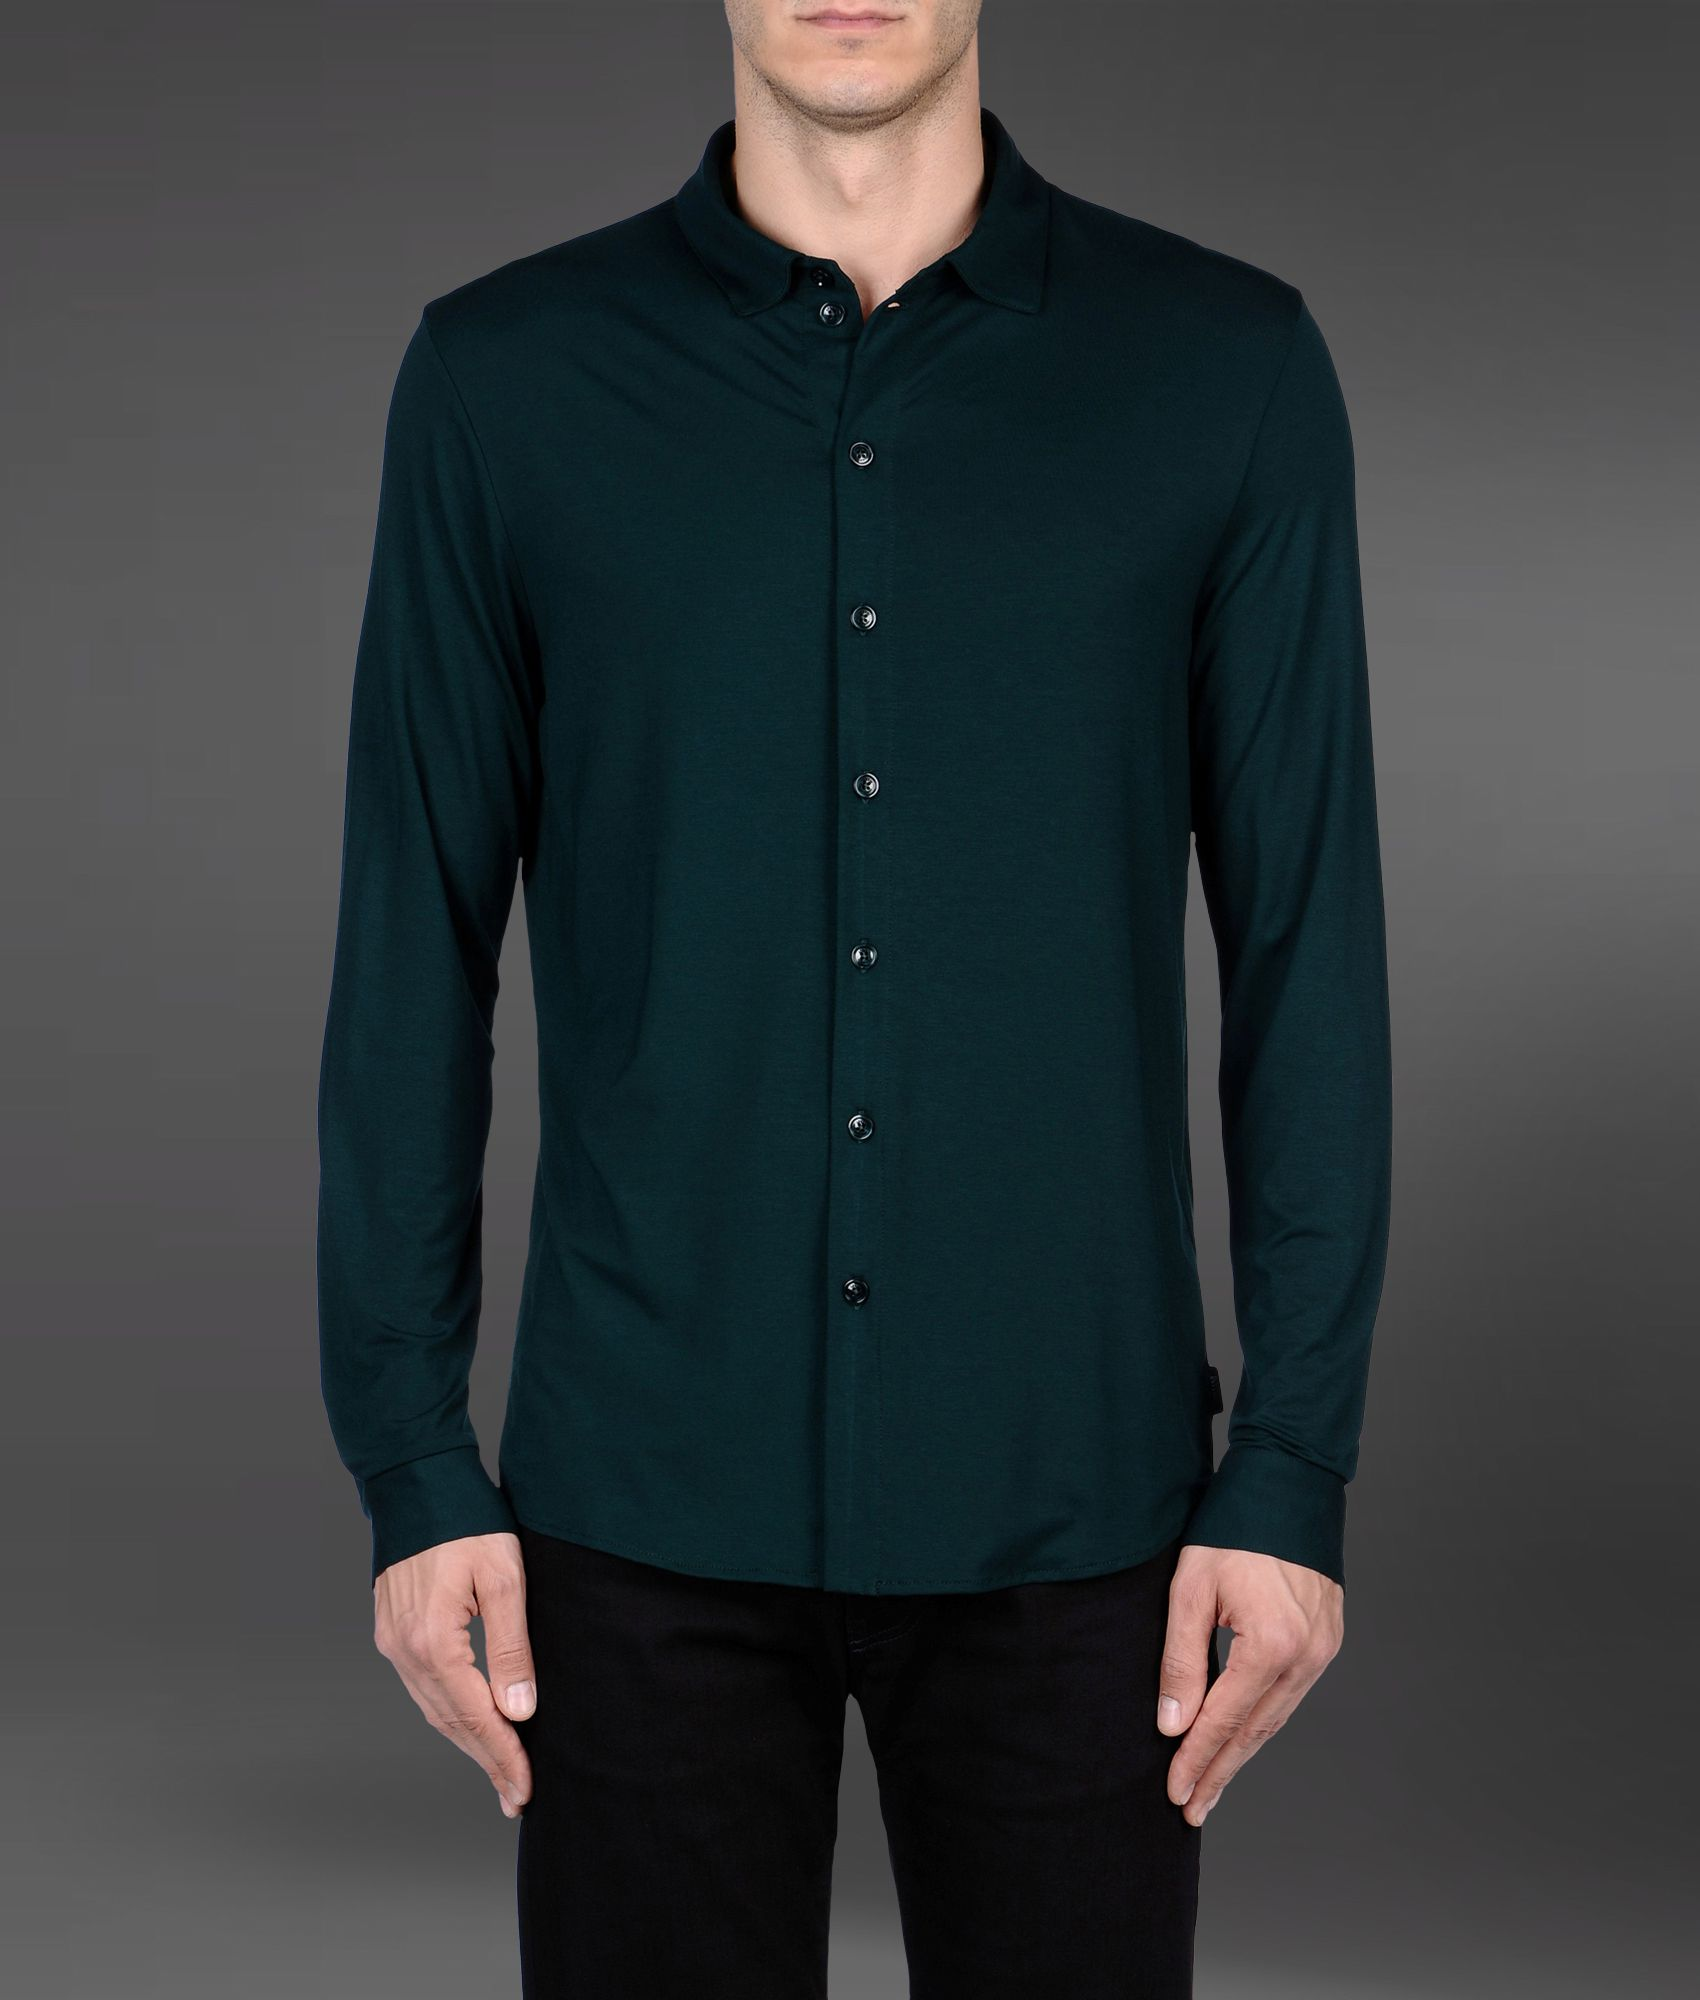 Lyst - Armani Long Sleeve Shirt in Green for Men